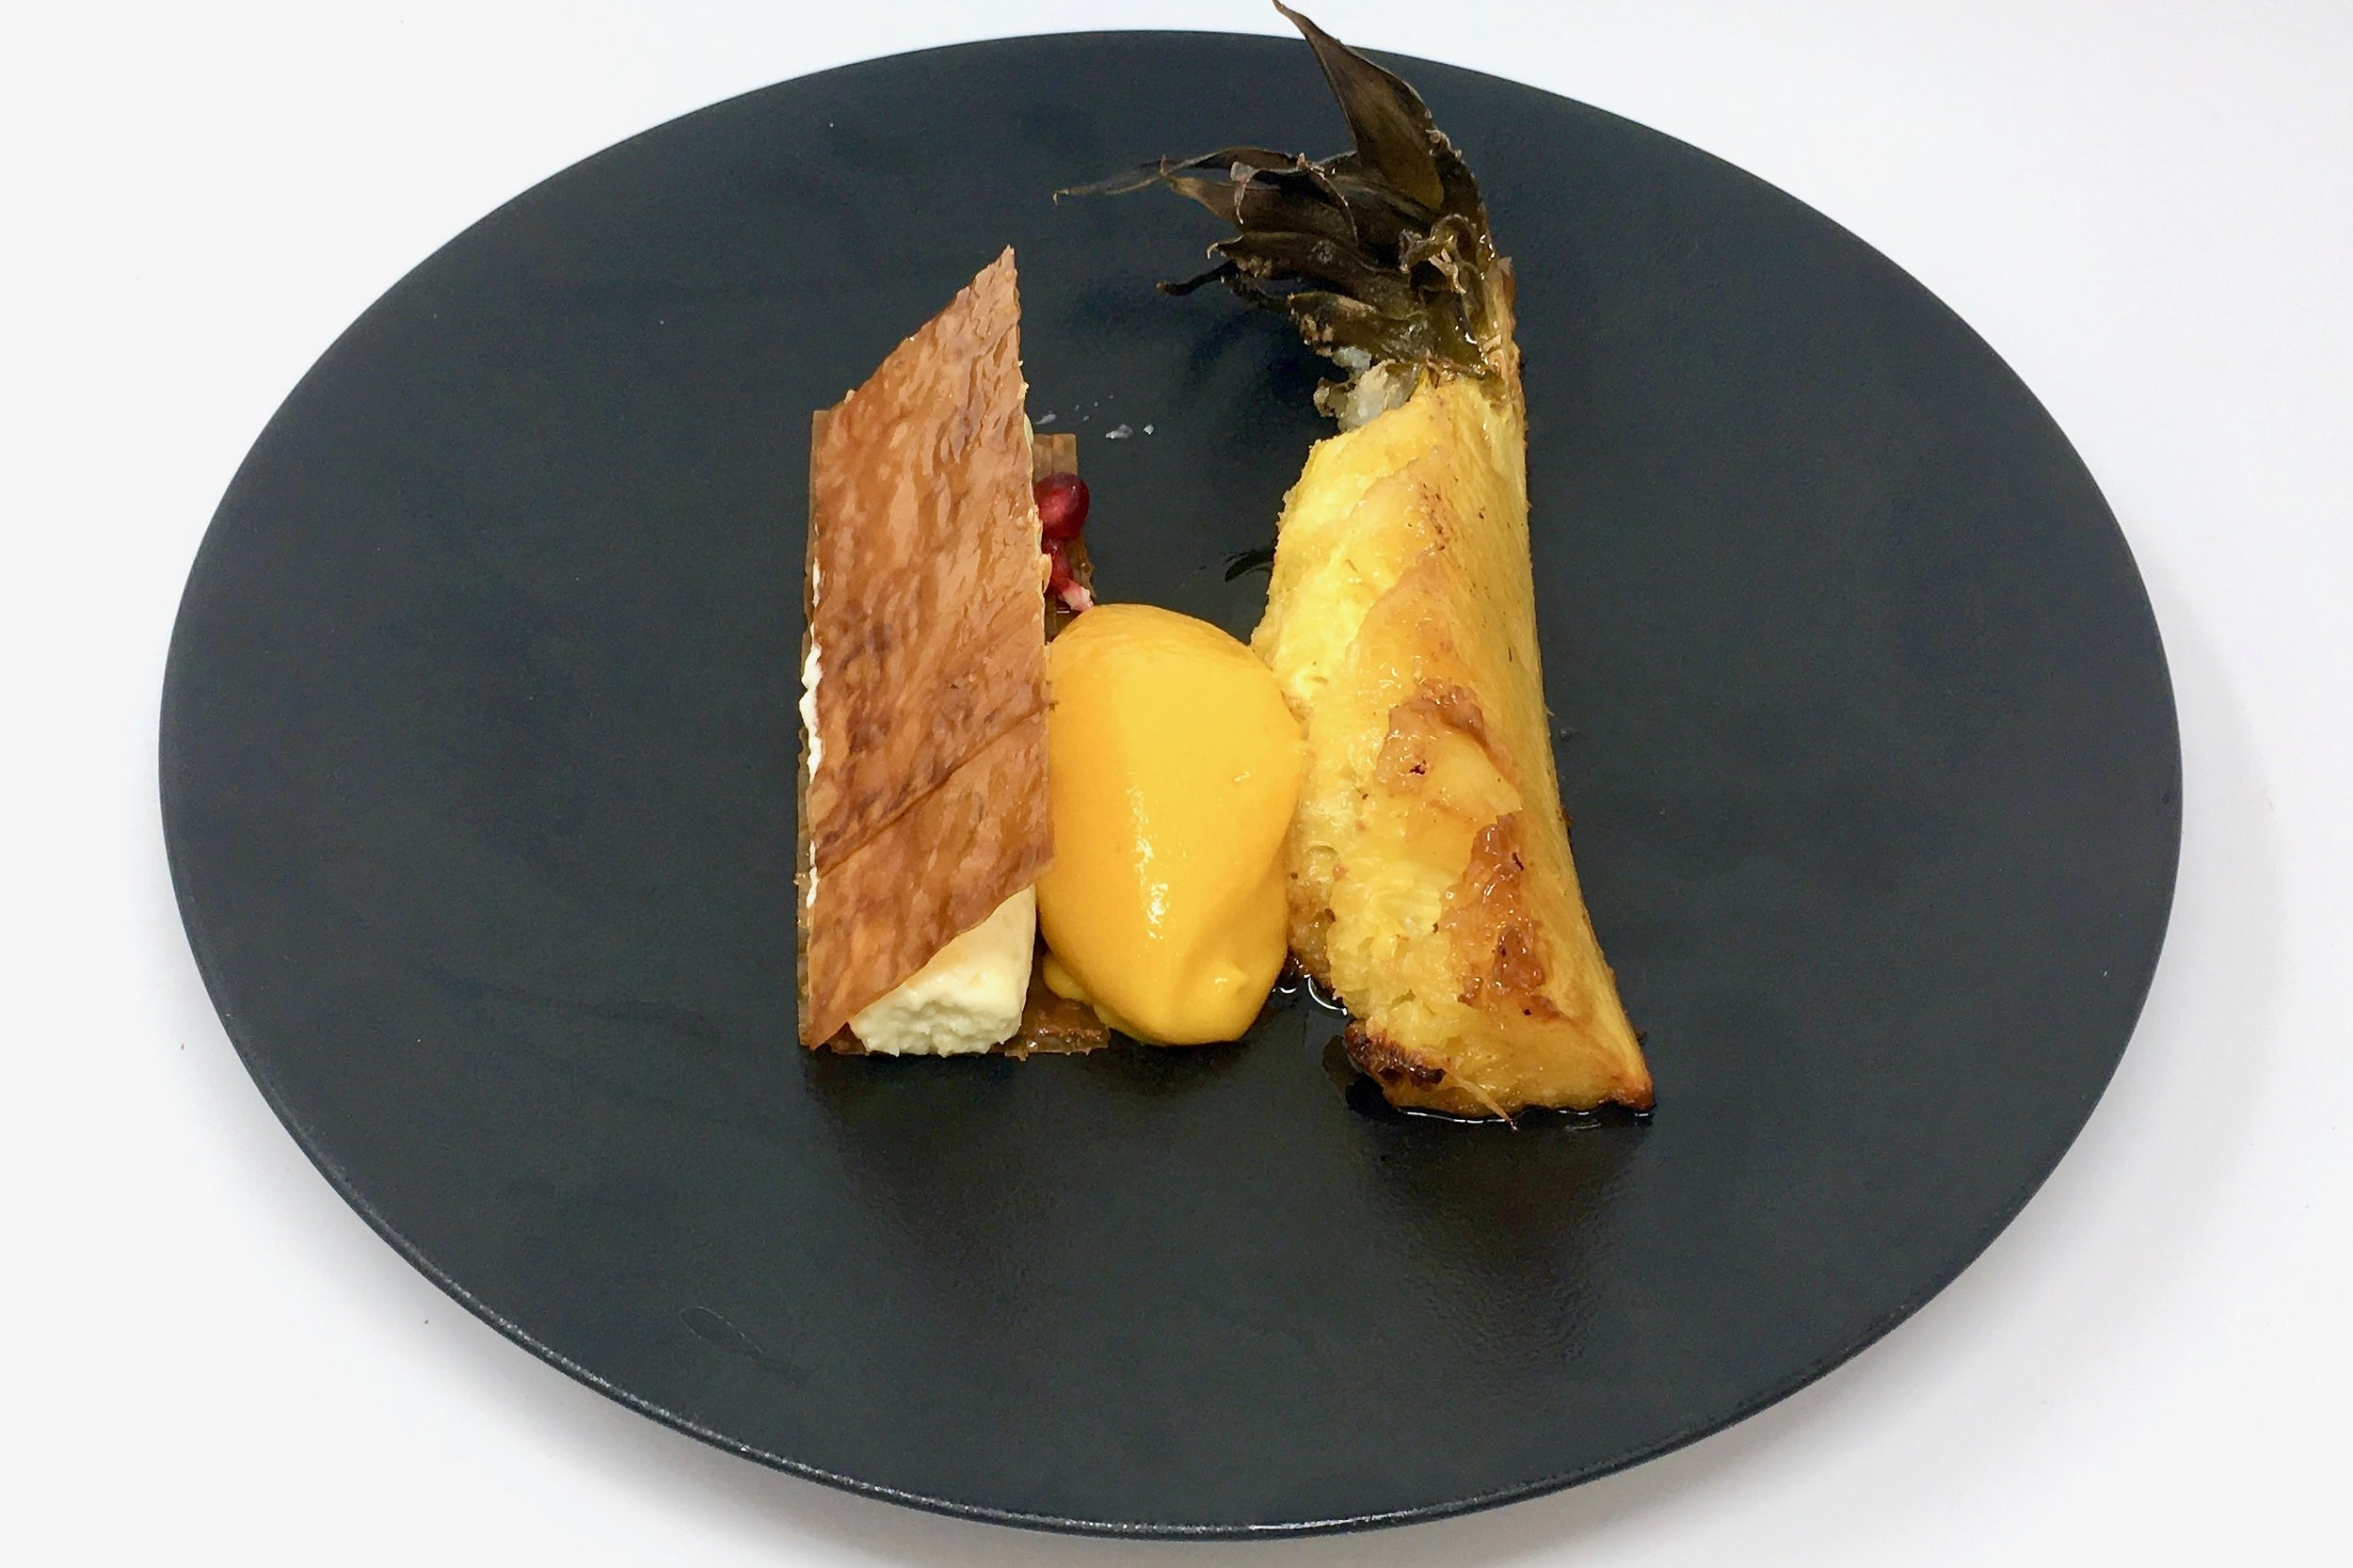 Caramelised pineapple with coconut and white chocolate mousse, mango sorbet, and pomegranate